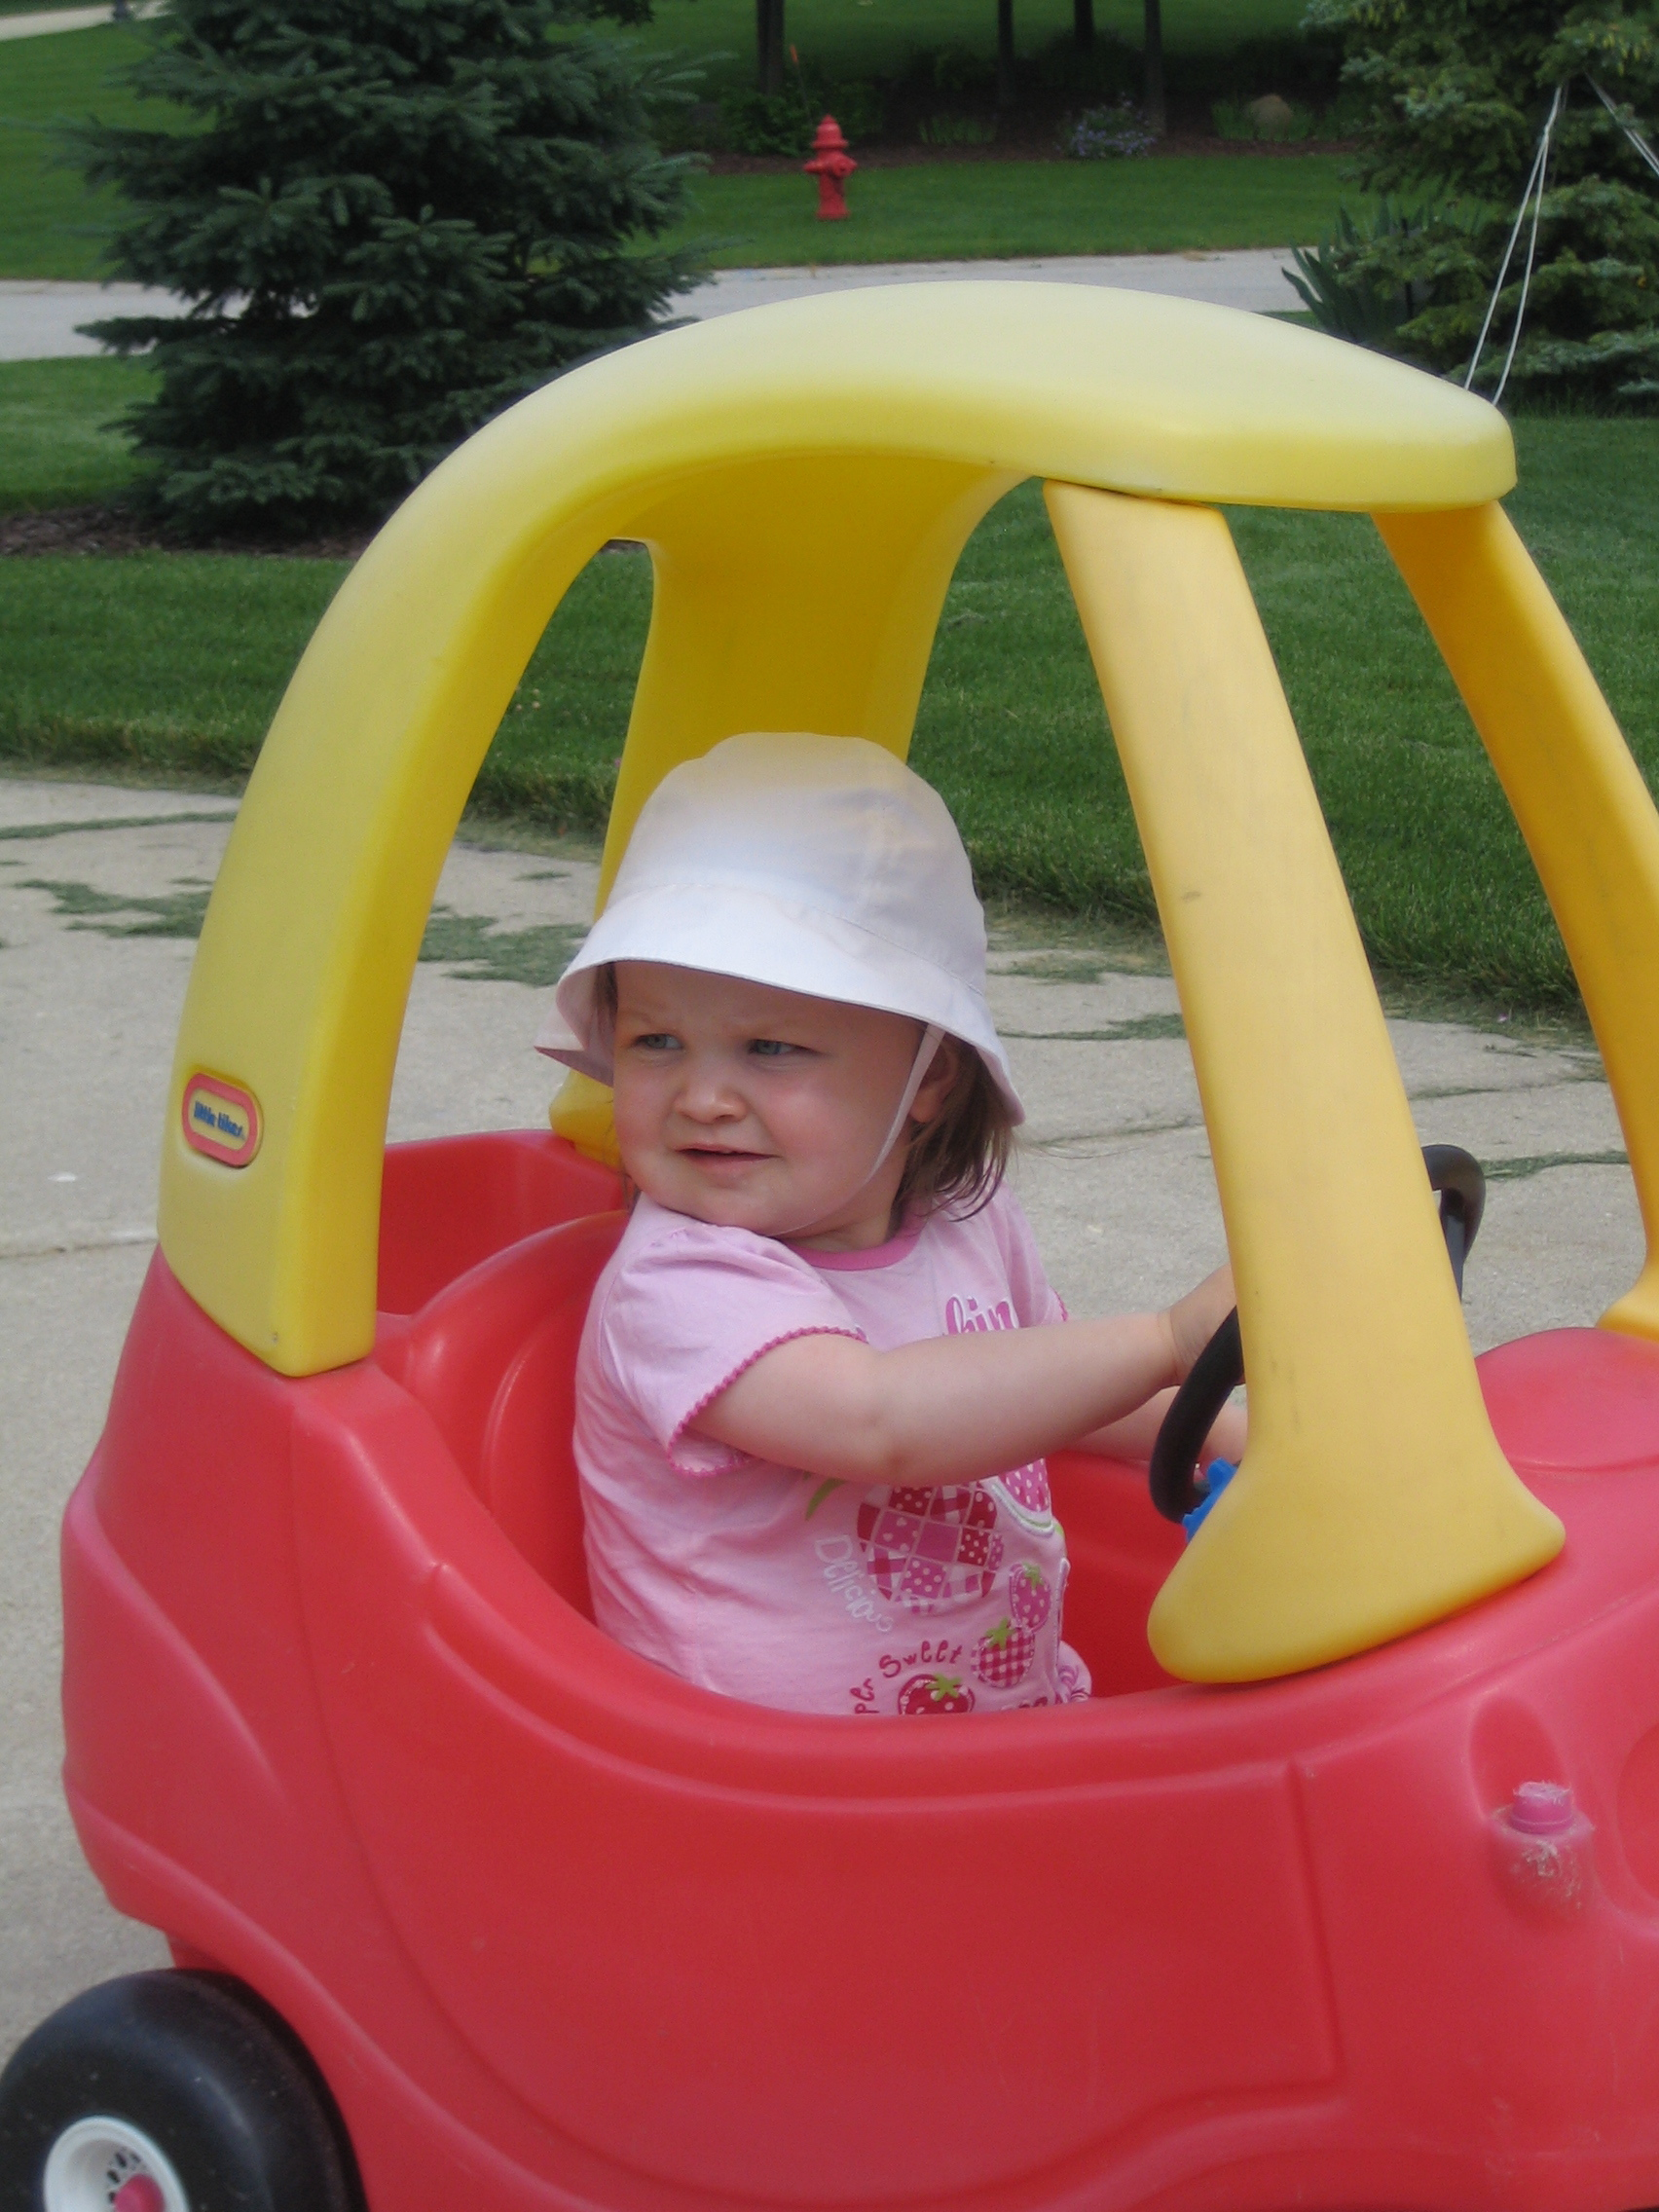 Gigi driving a toddler car.